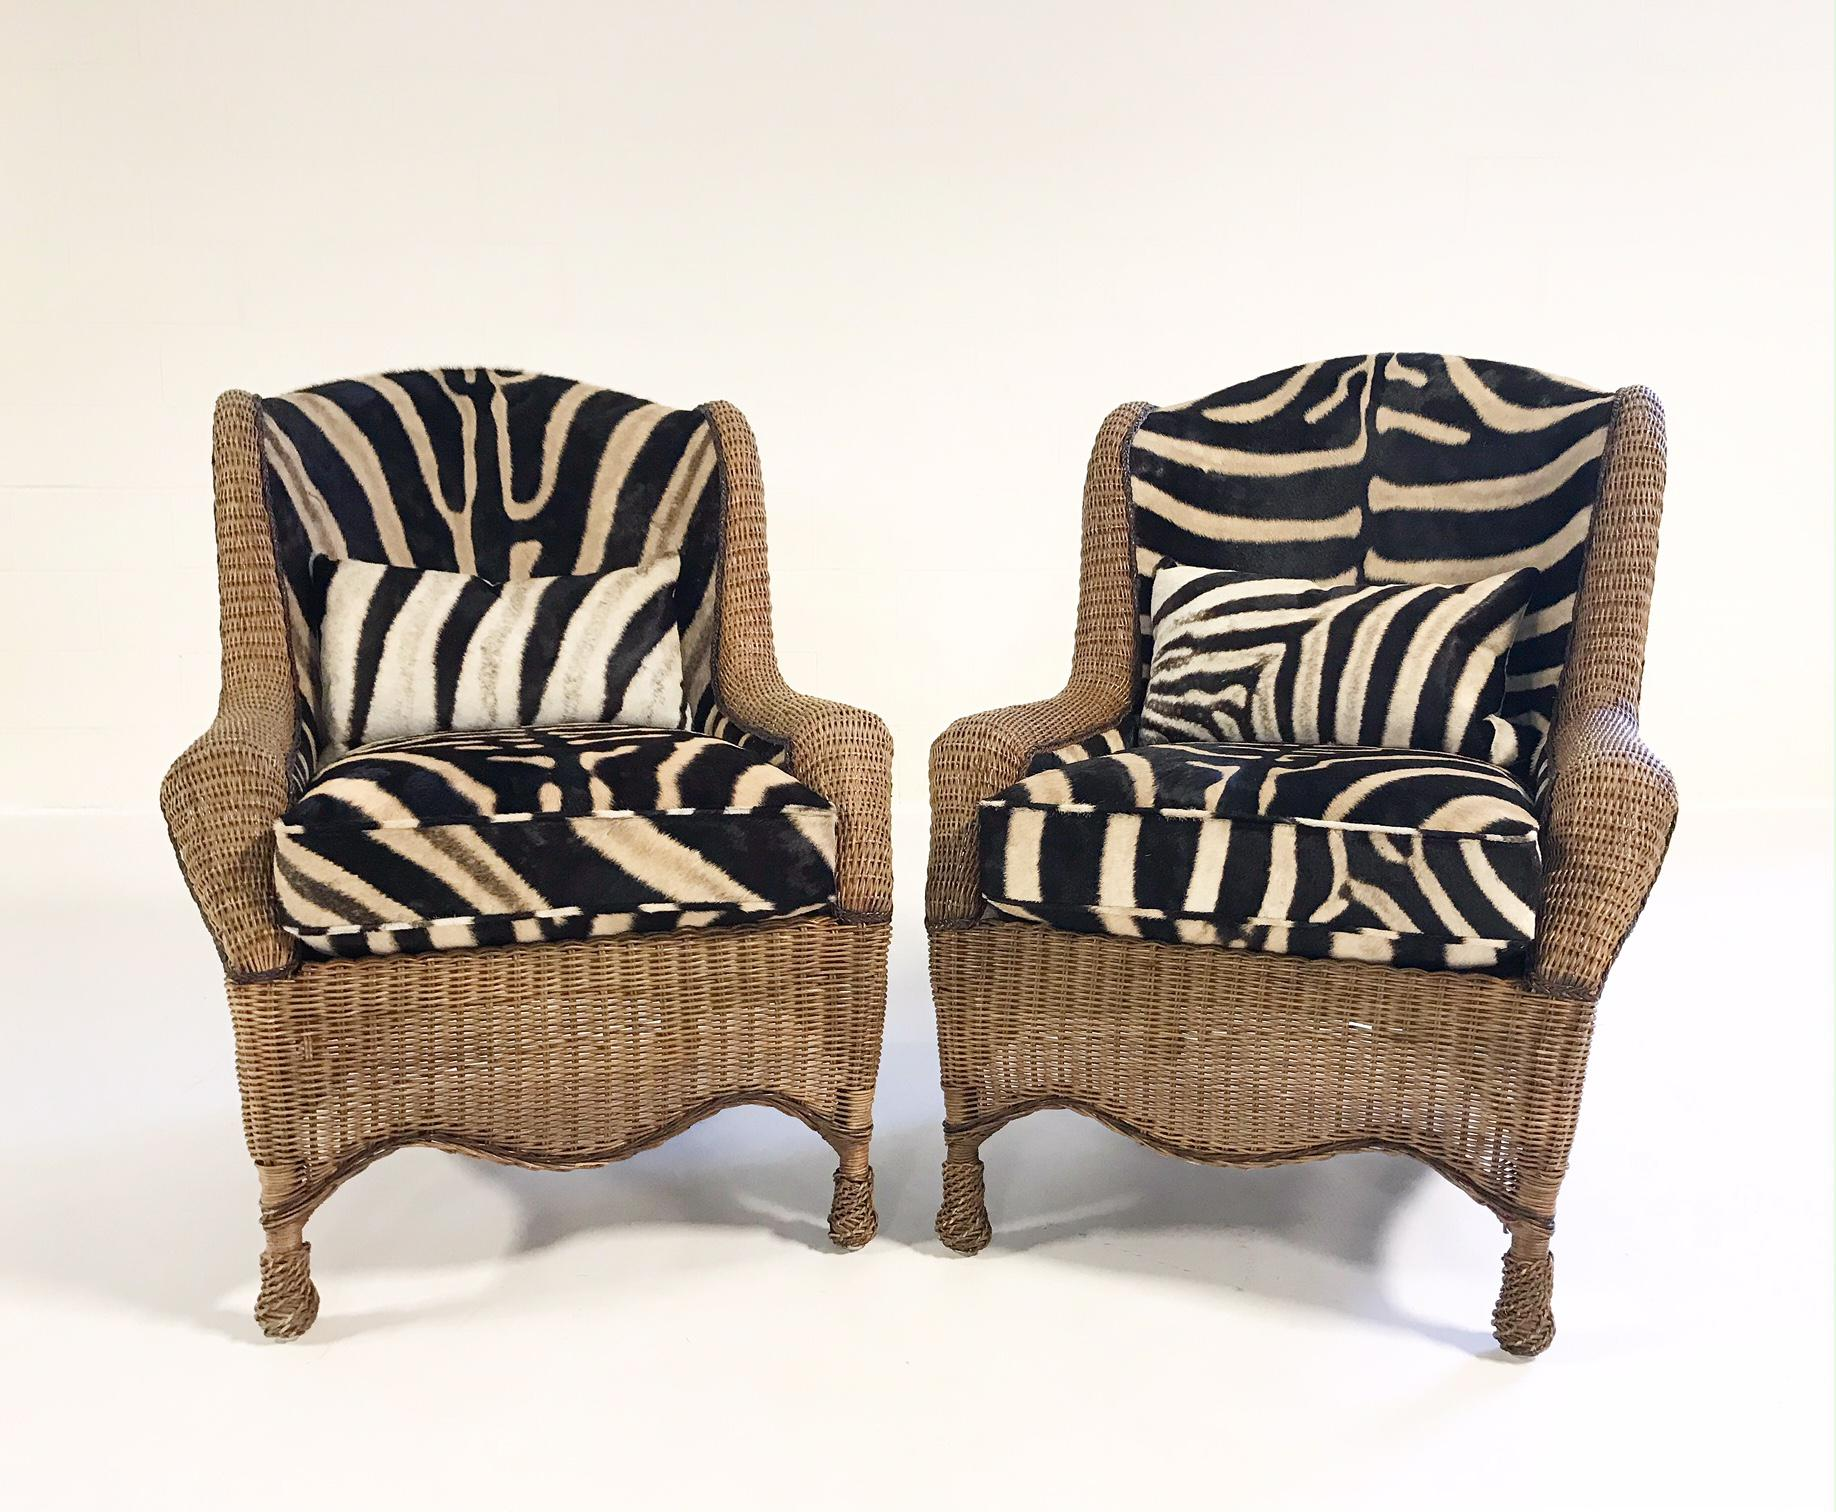 Ralph Lauren Vintage Ralph Lauren Wicker Wingback Chairs Restored In Zebra  Hide   Pair For Sale